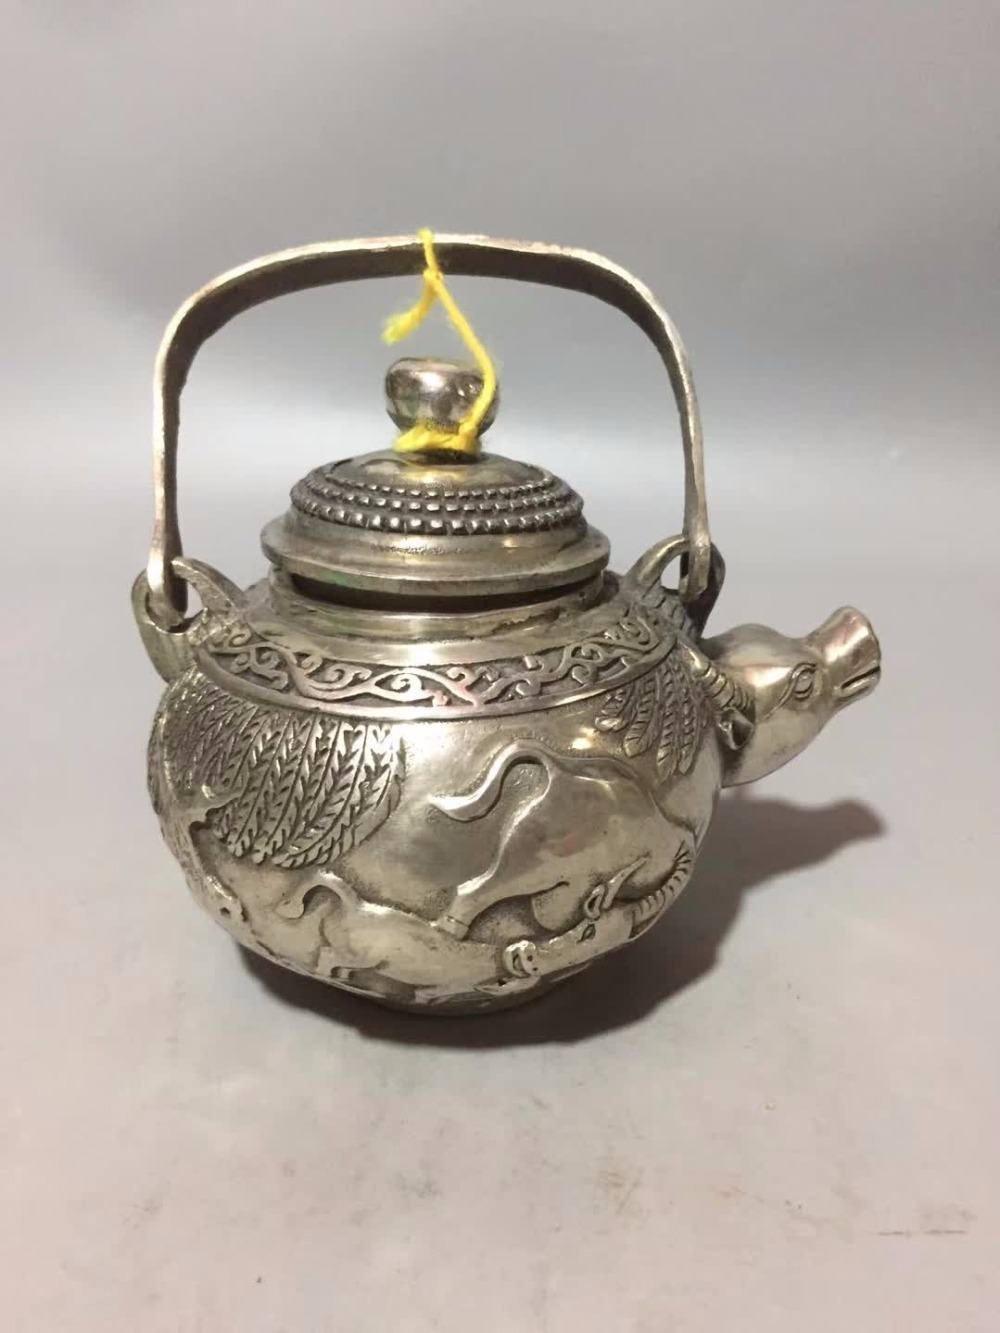 Art Collection Tibet Silver Old Handmade Carving Ox/bull Pot /chinese Antique Tea Pot Home/desk Decoration Teapot Crafts Home Decor